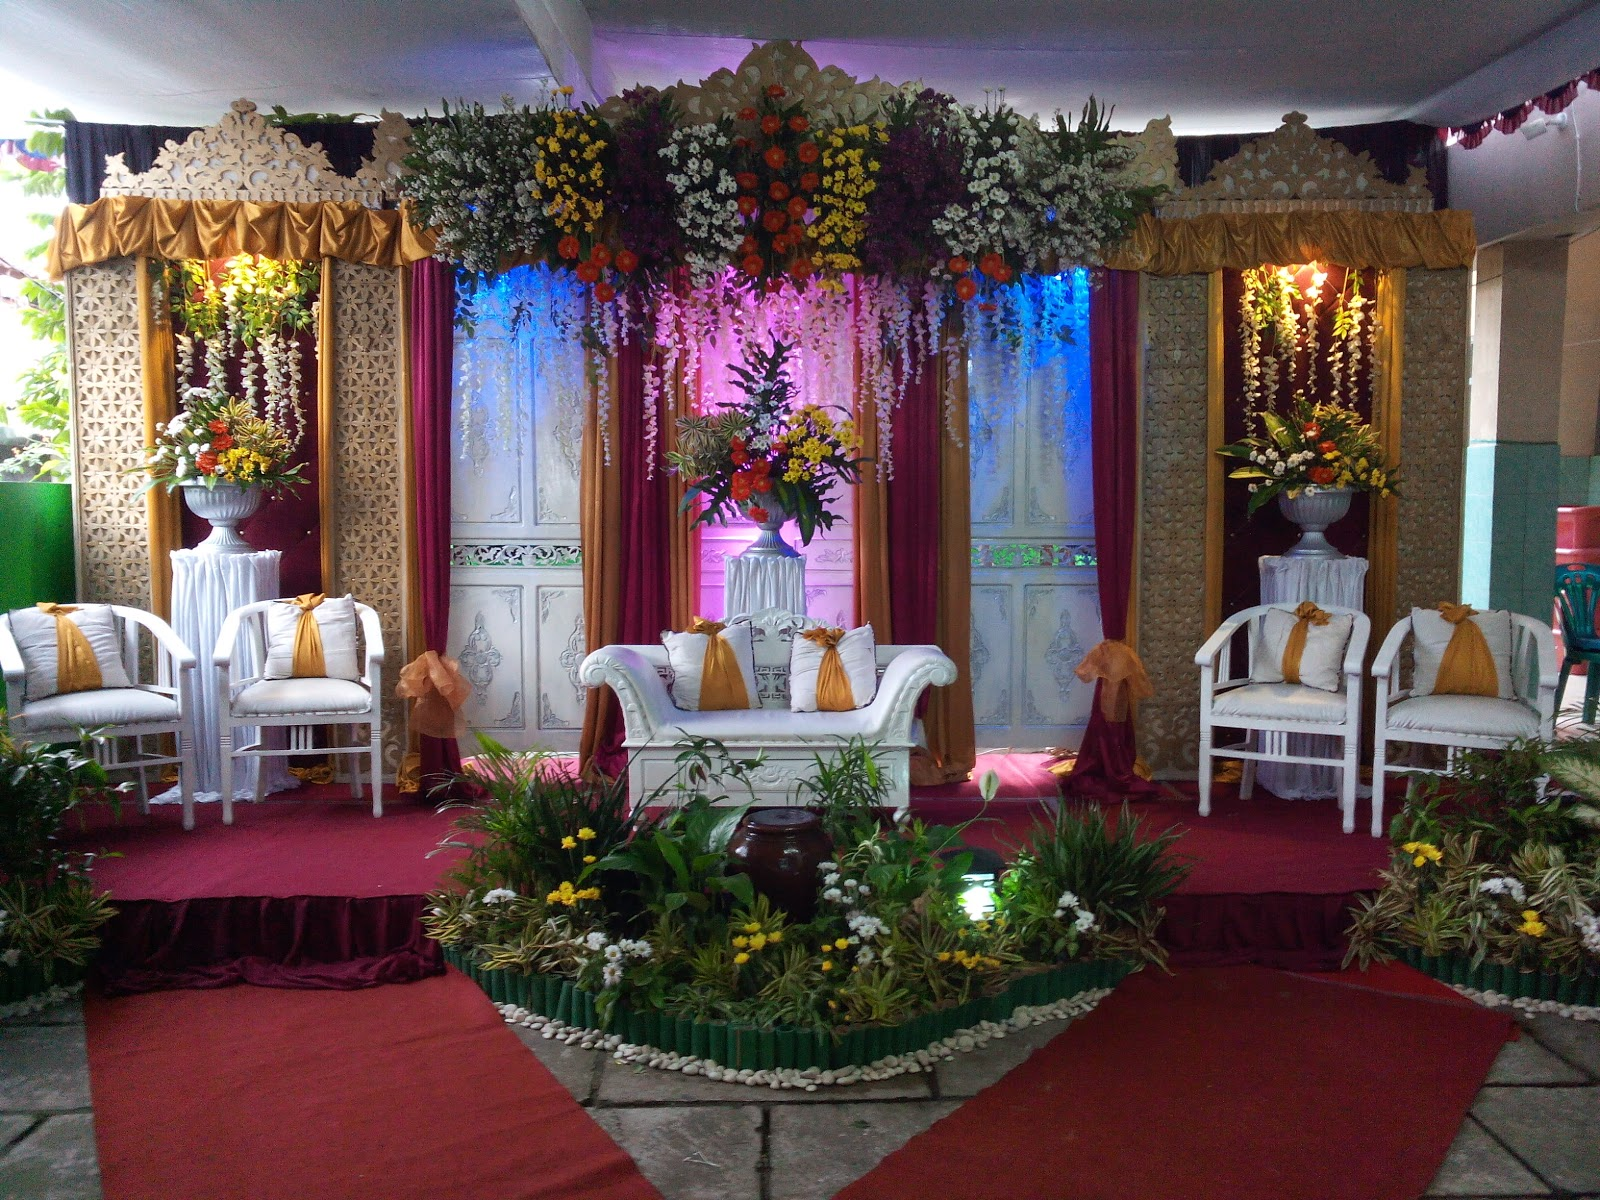 Wedding decoration di semarang image collections wedding dress wedding decoration di semarang choice image wedding dress wedding decoration semarang all the best ideas about junglespirit Gallery